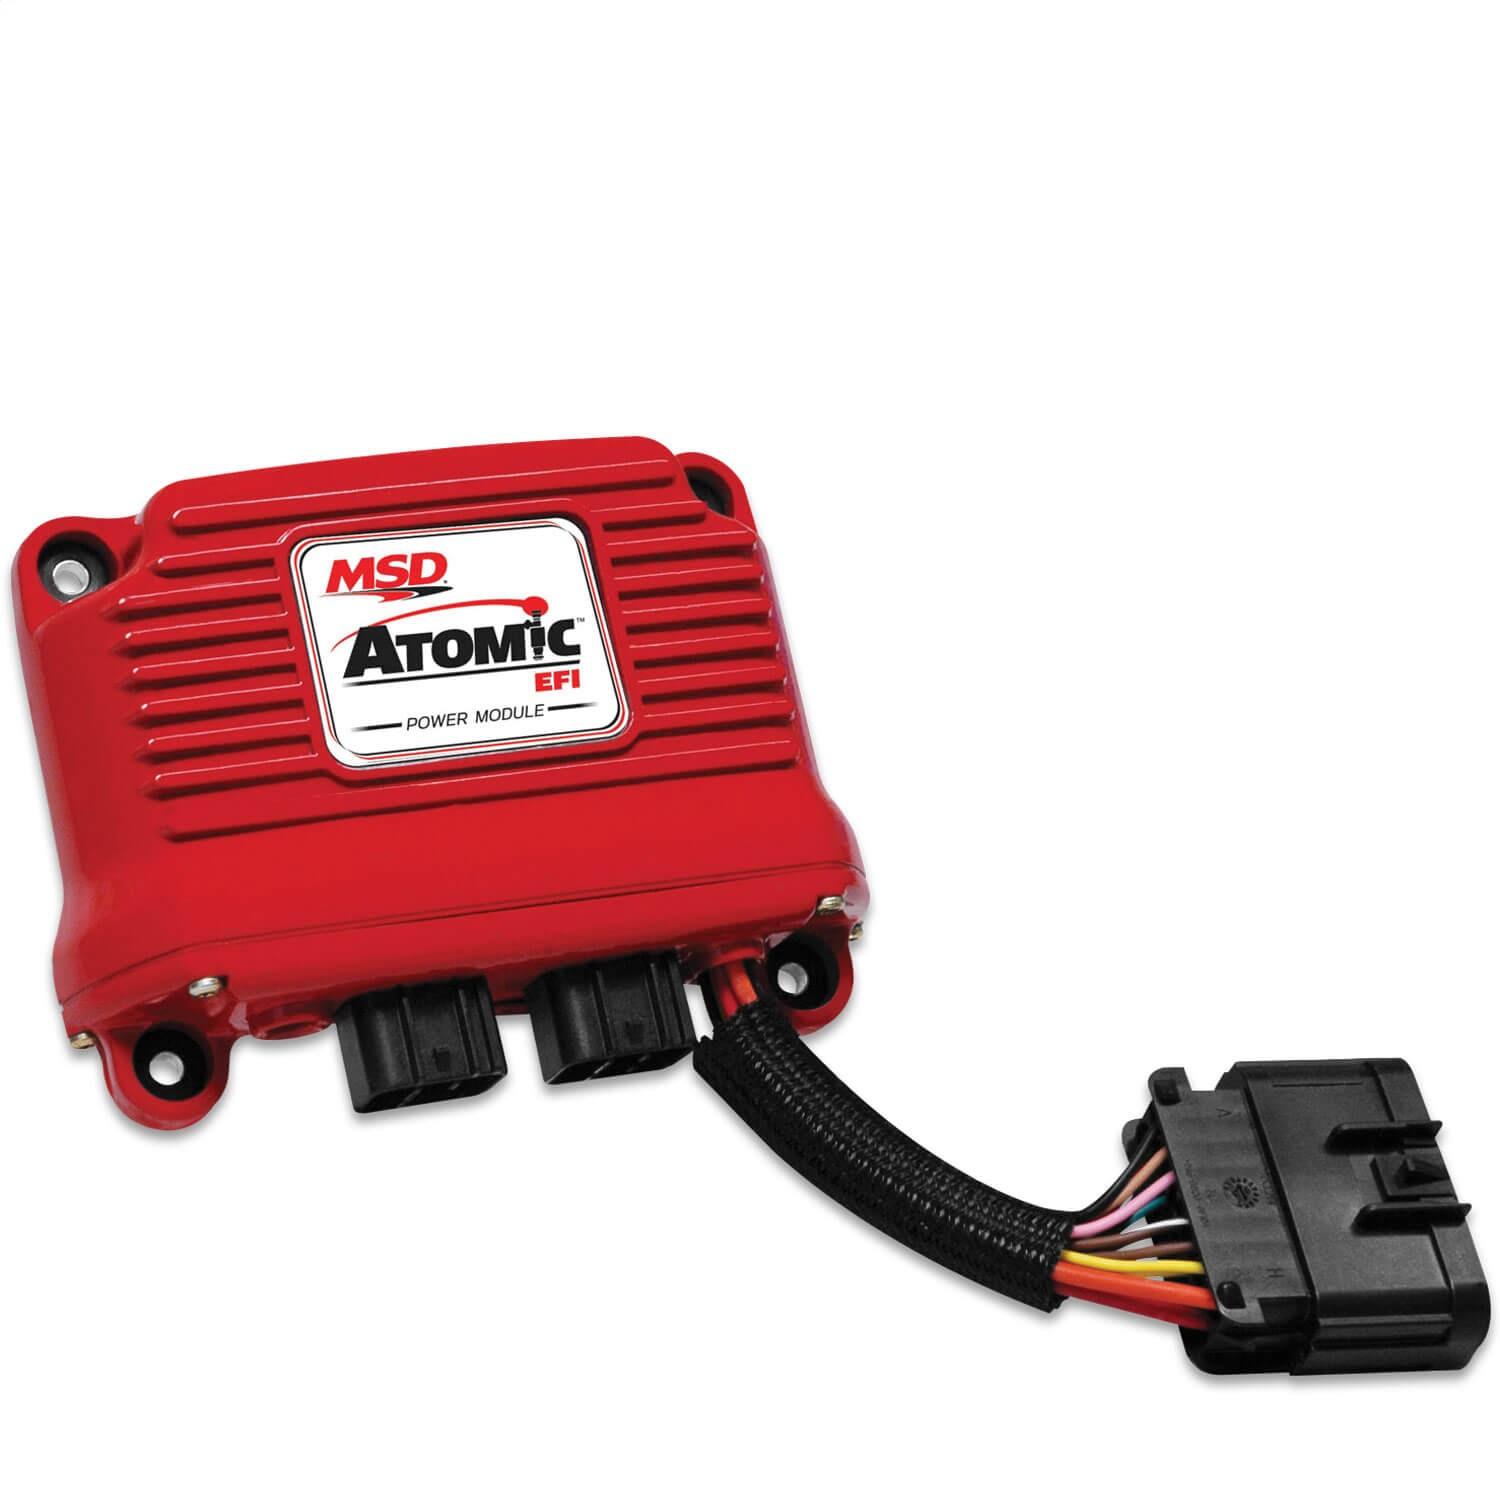 Msd Ignition 2900 Atomic Efi Fuel Injection Conversion Kit 525hp W System Wiring Diagram Master